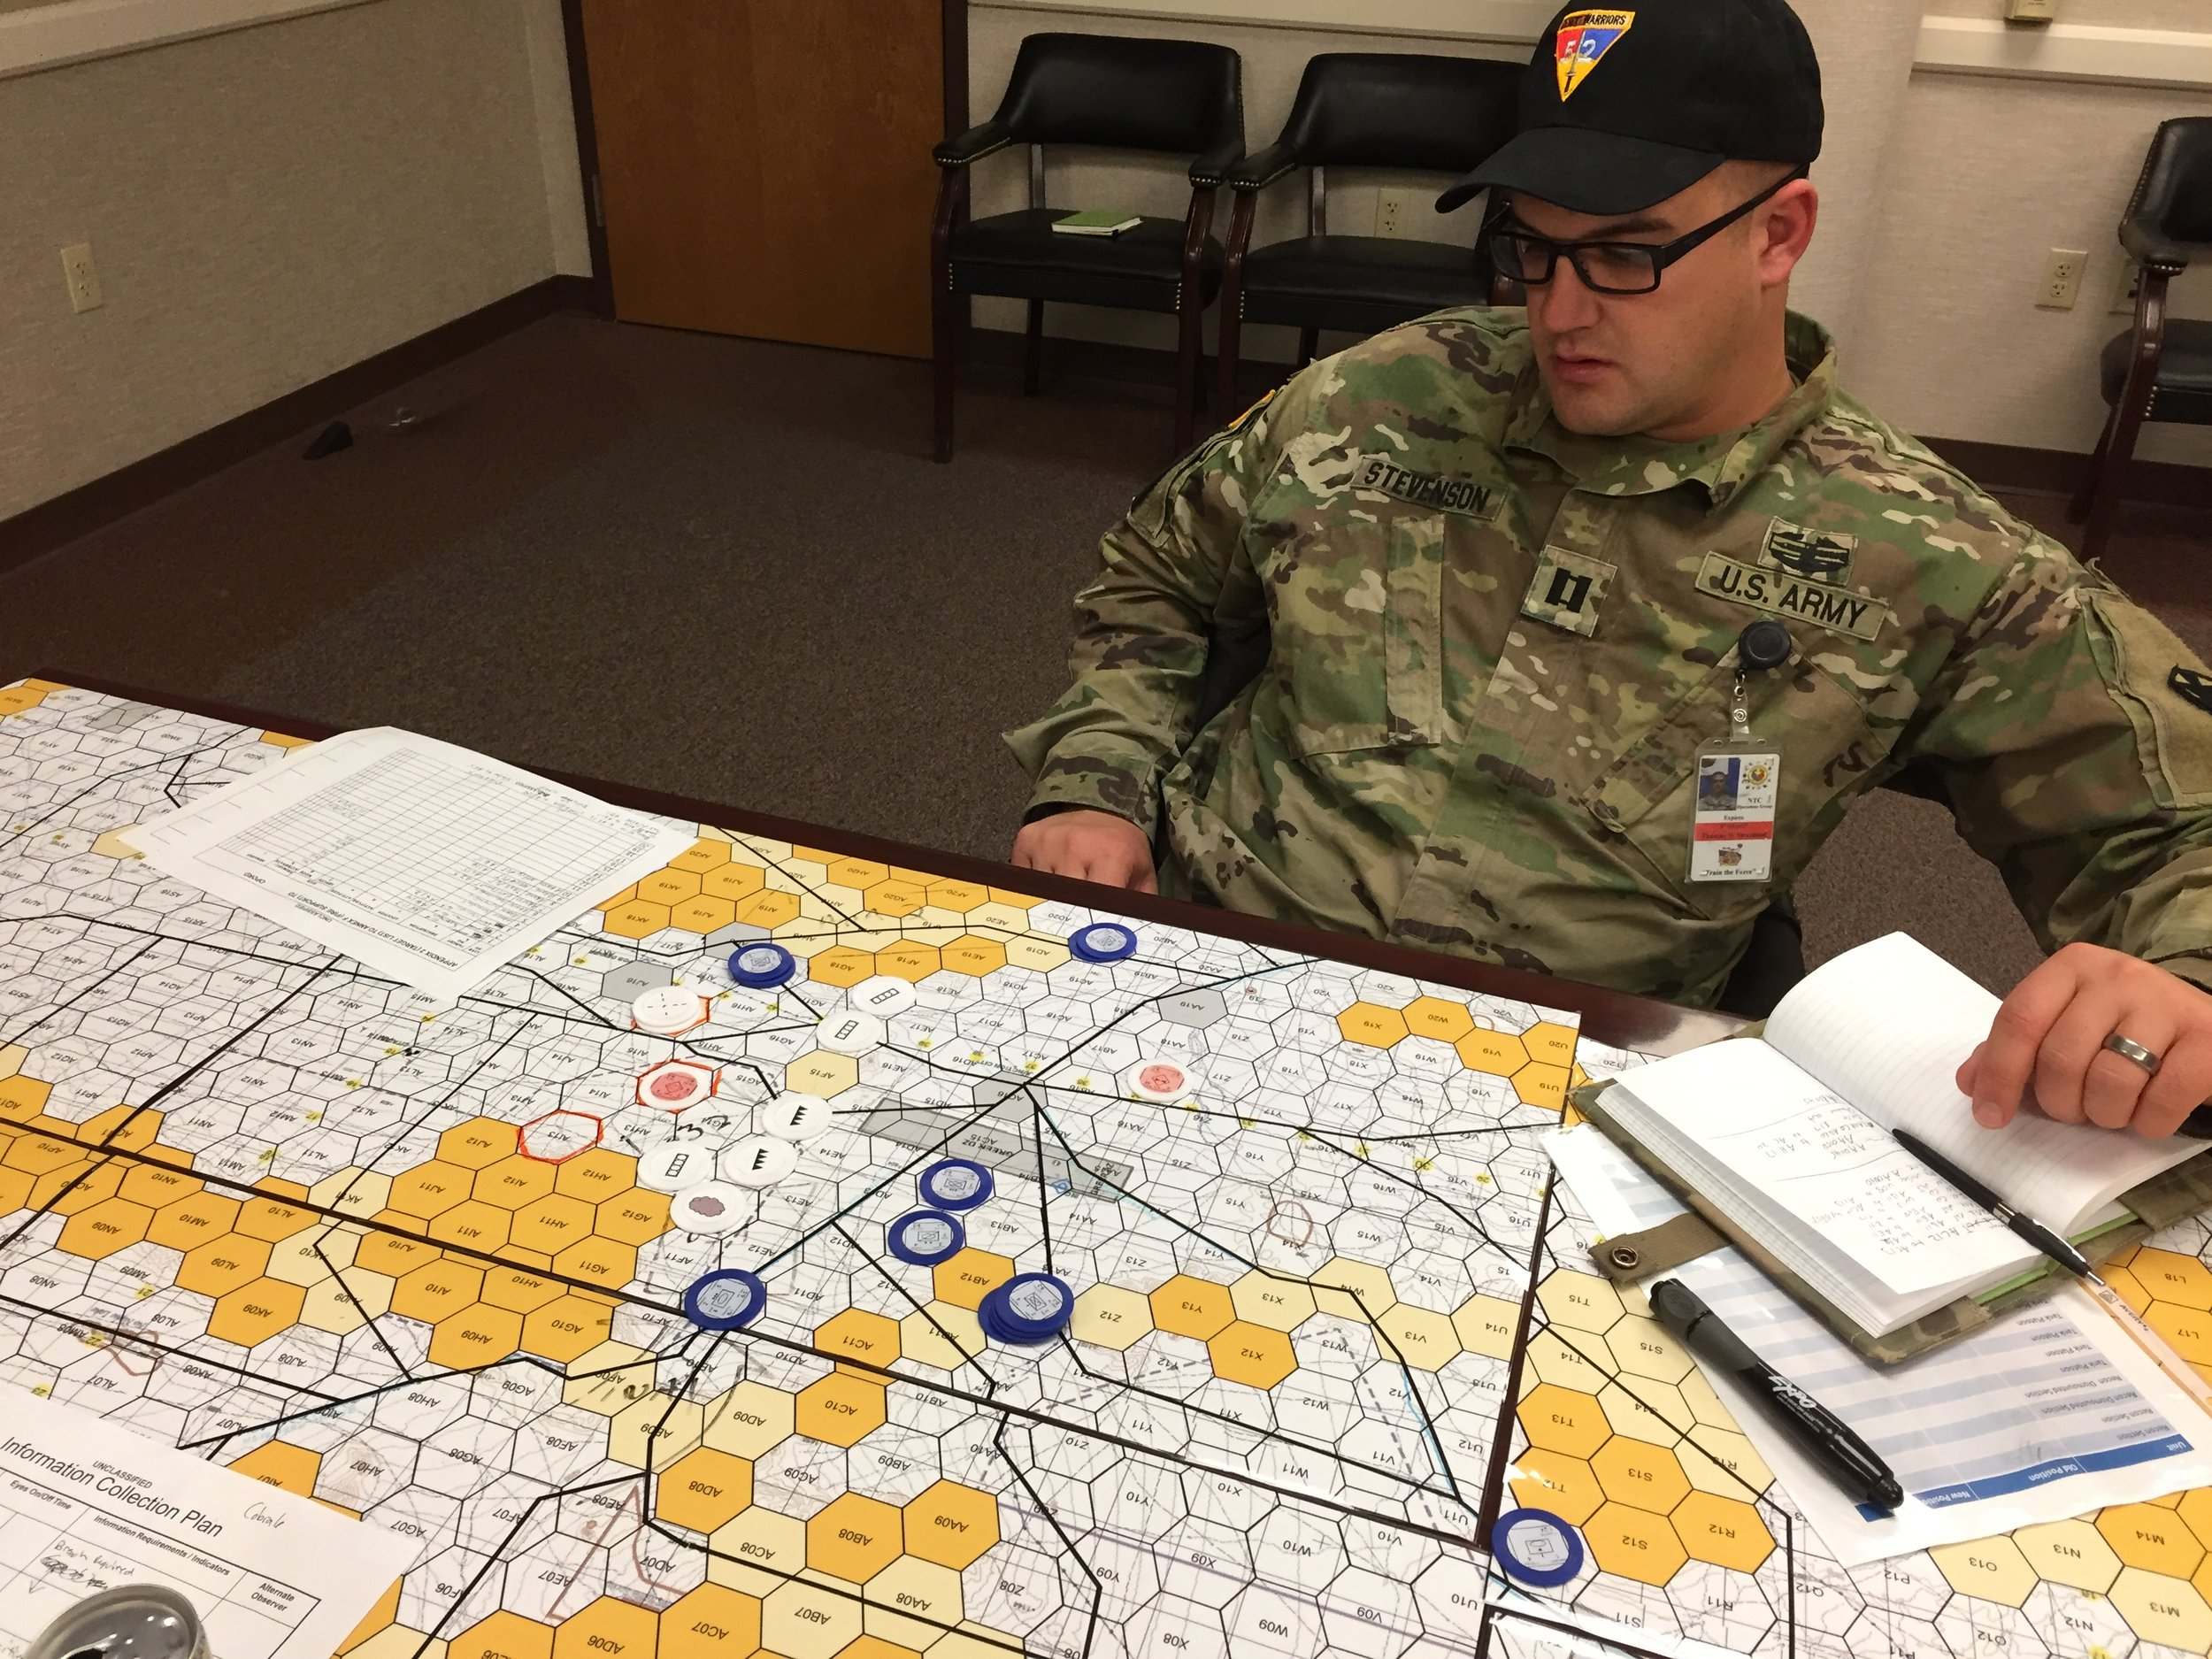 Double-blind tactical decision exercises, can serve as a tool to think and learn about the range of potential enemy courses of action, reconnaissance pull, and decision points.